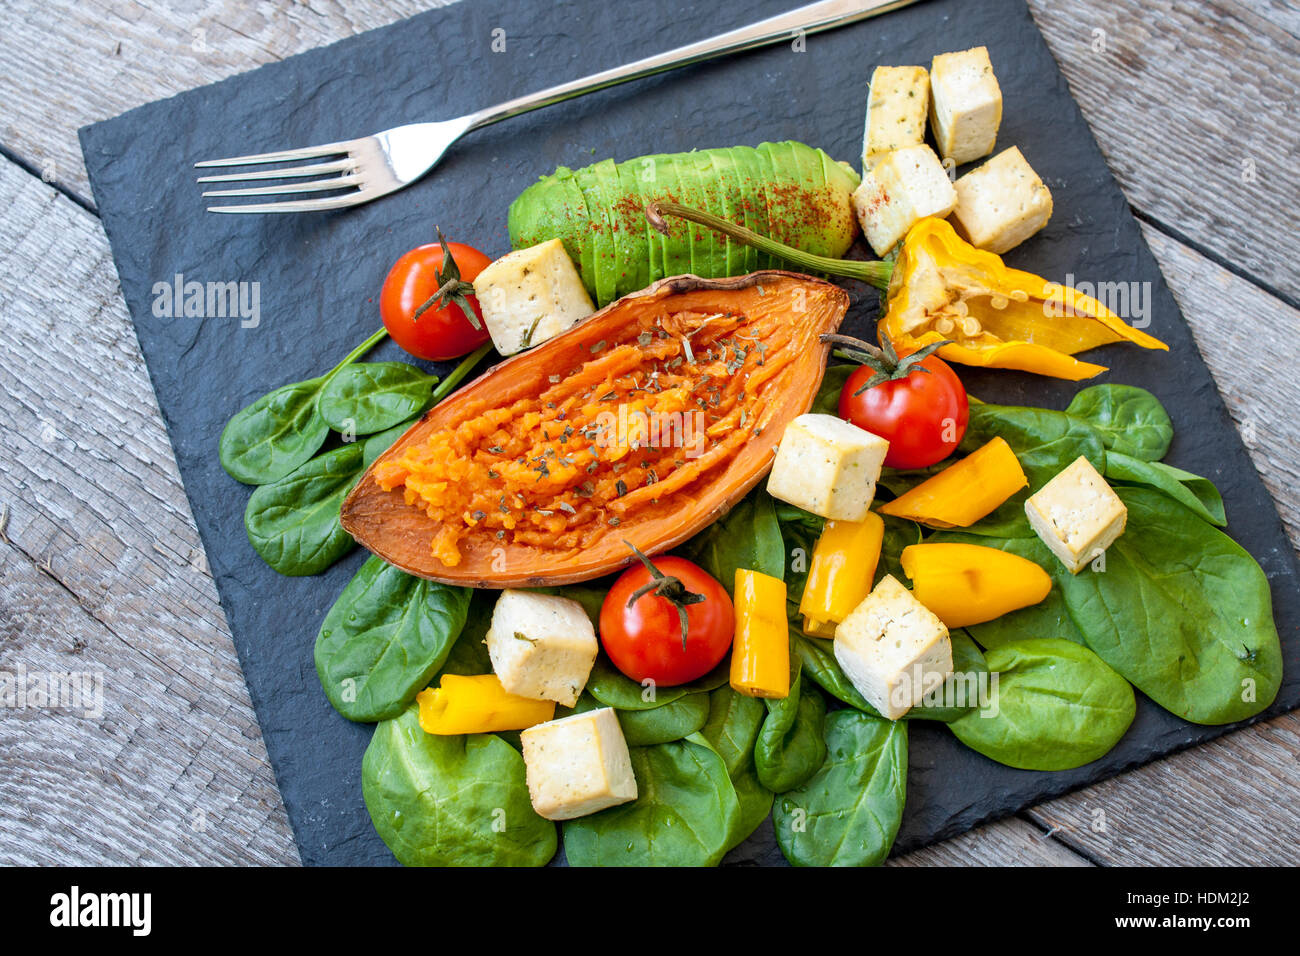 Salad with grilled vegetables: grilled sweet potatoes, tomatoes, avocados, spinach, tofu and pepper on dark slate Stock Photo